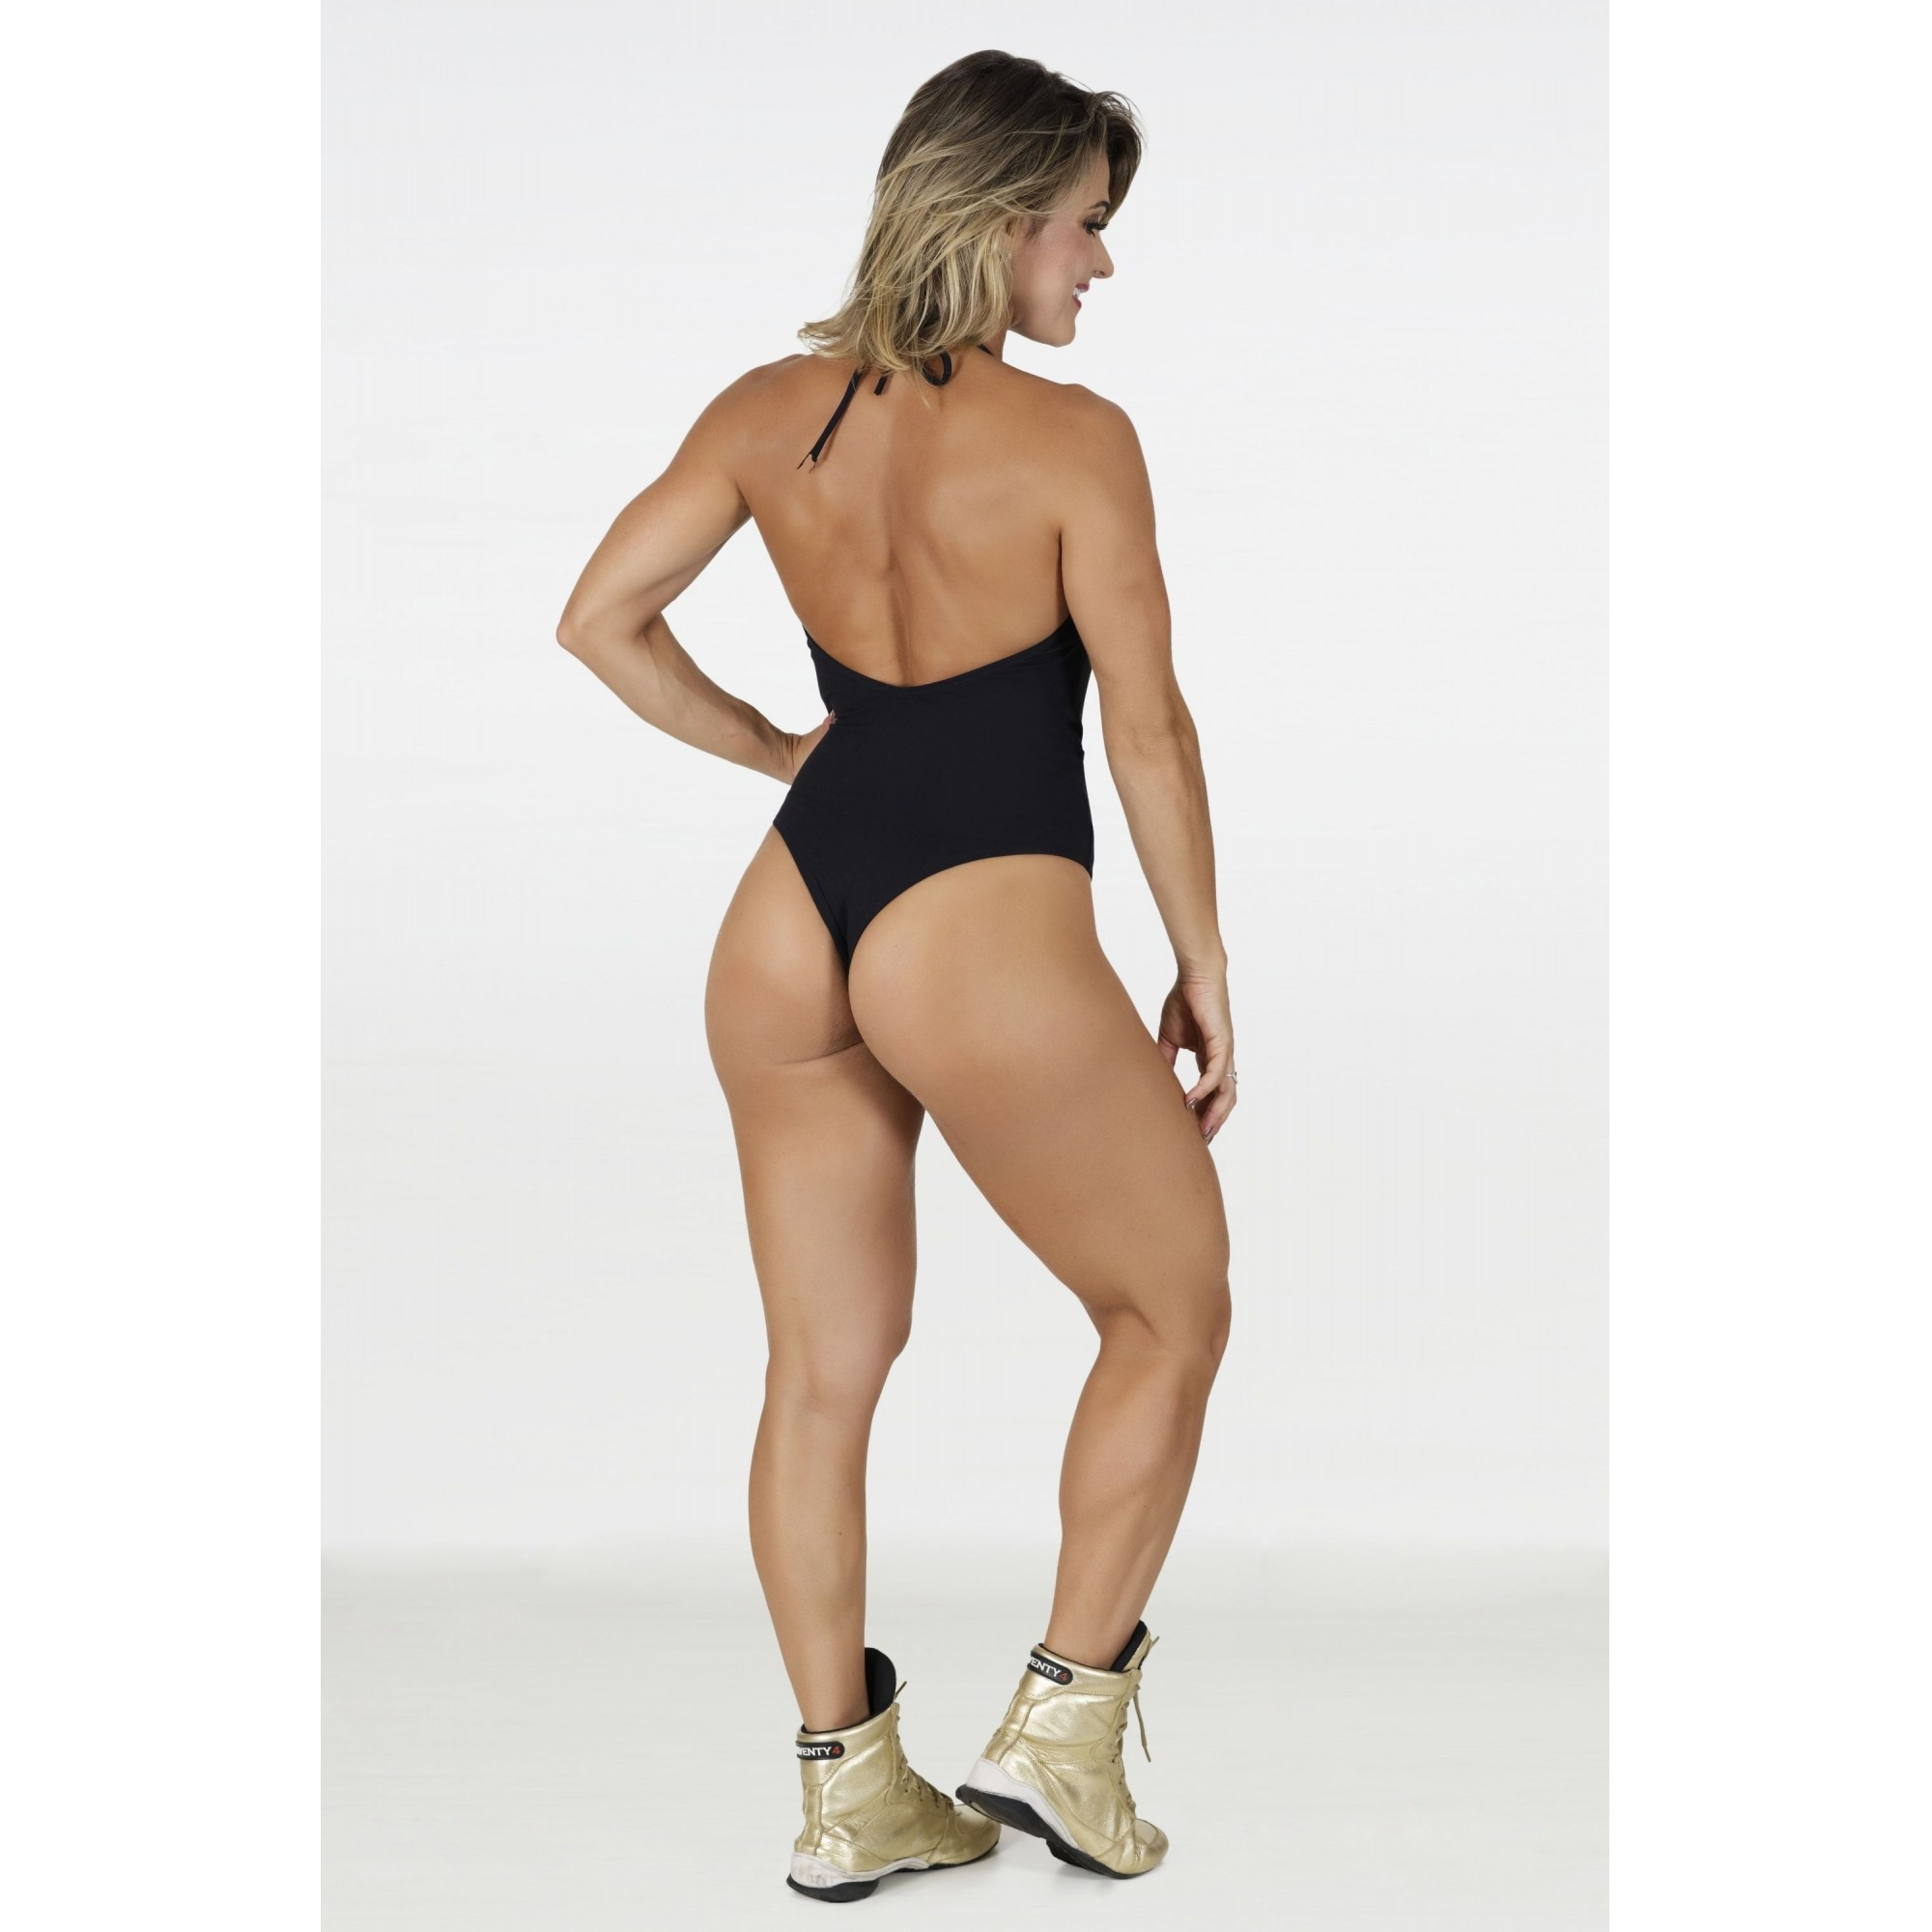 Body Maiô May   - Fribasex - Fabricasex.com